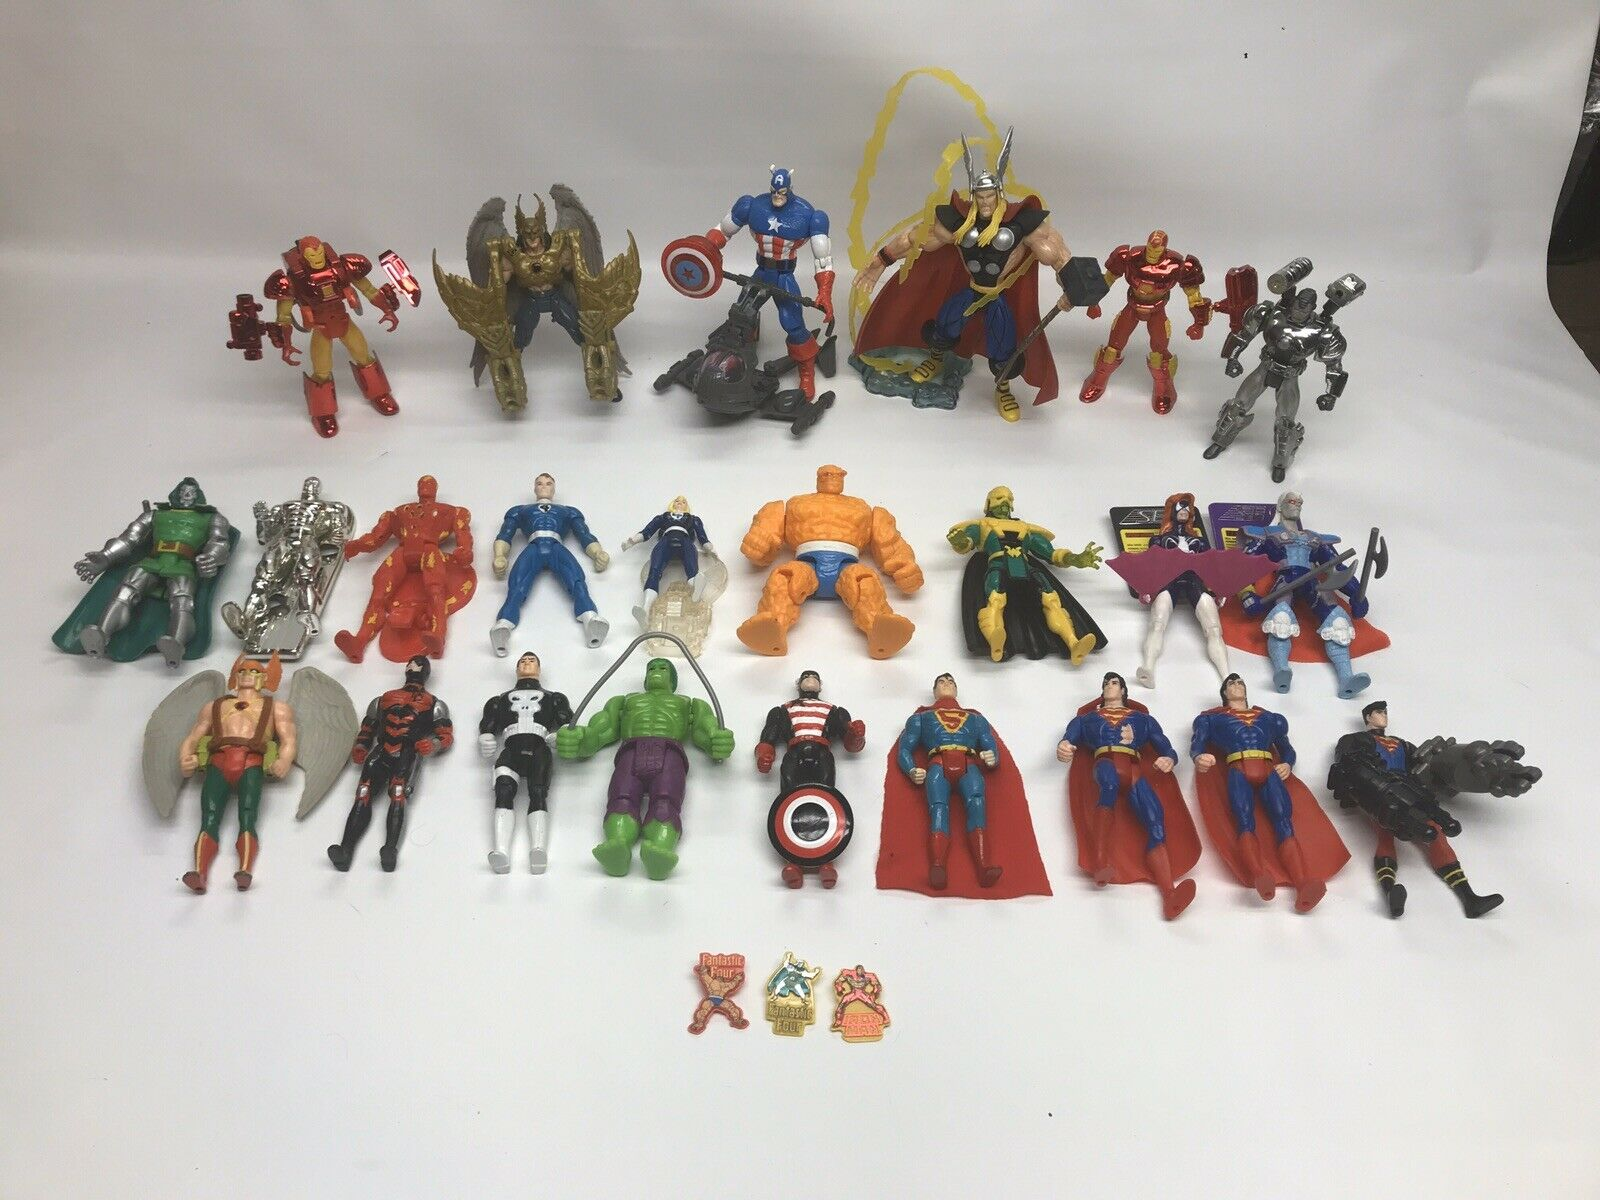 24 Marvel Super Heroes giocattolo Biz cifras 90's. Great Condition  tutti Parts